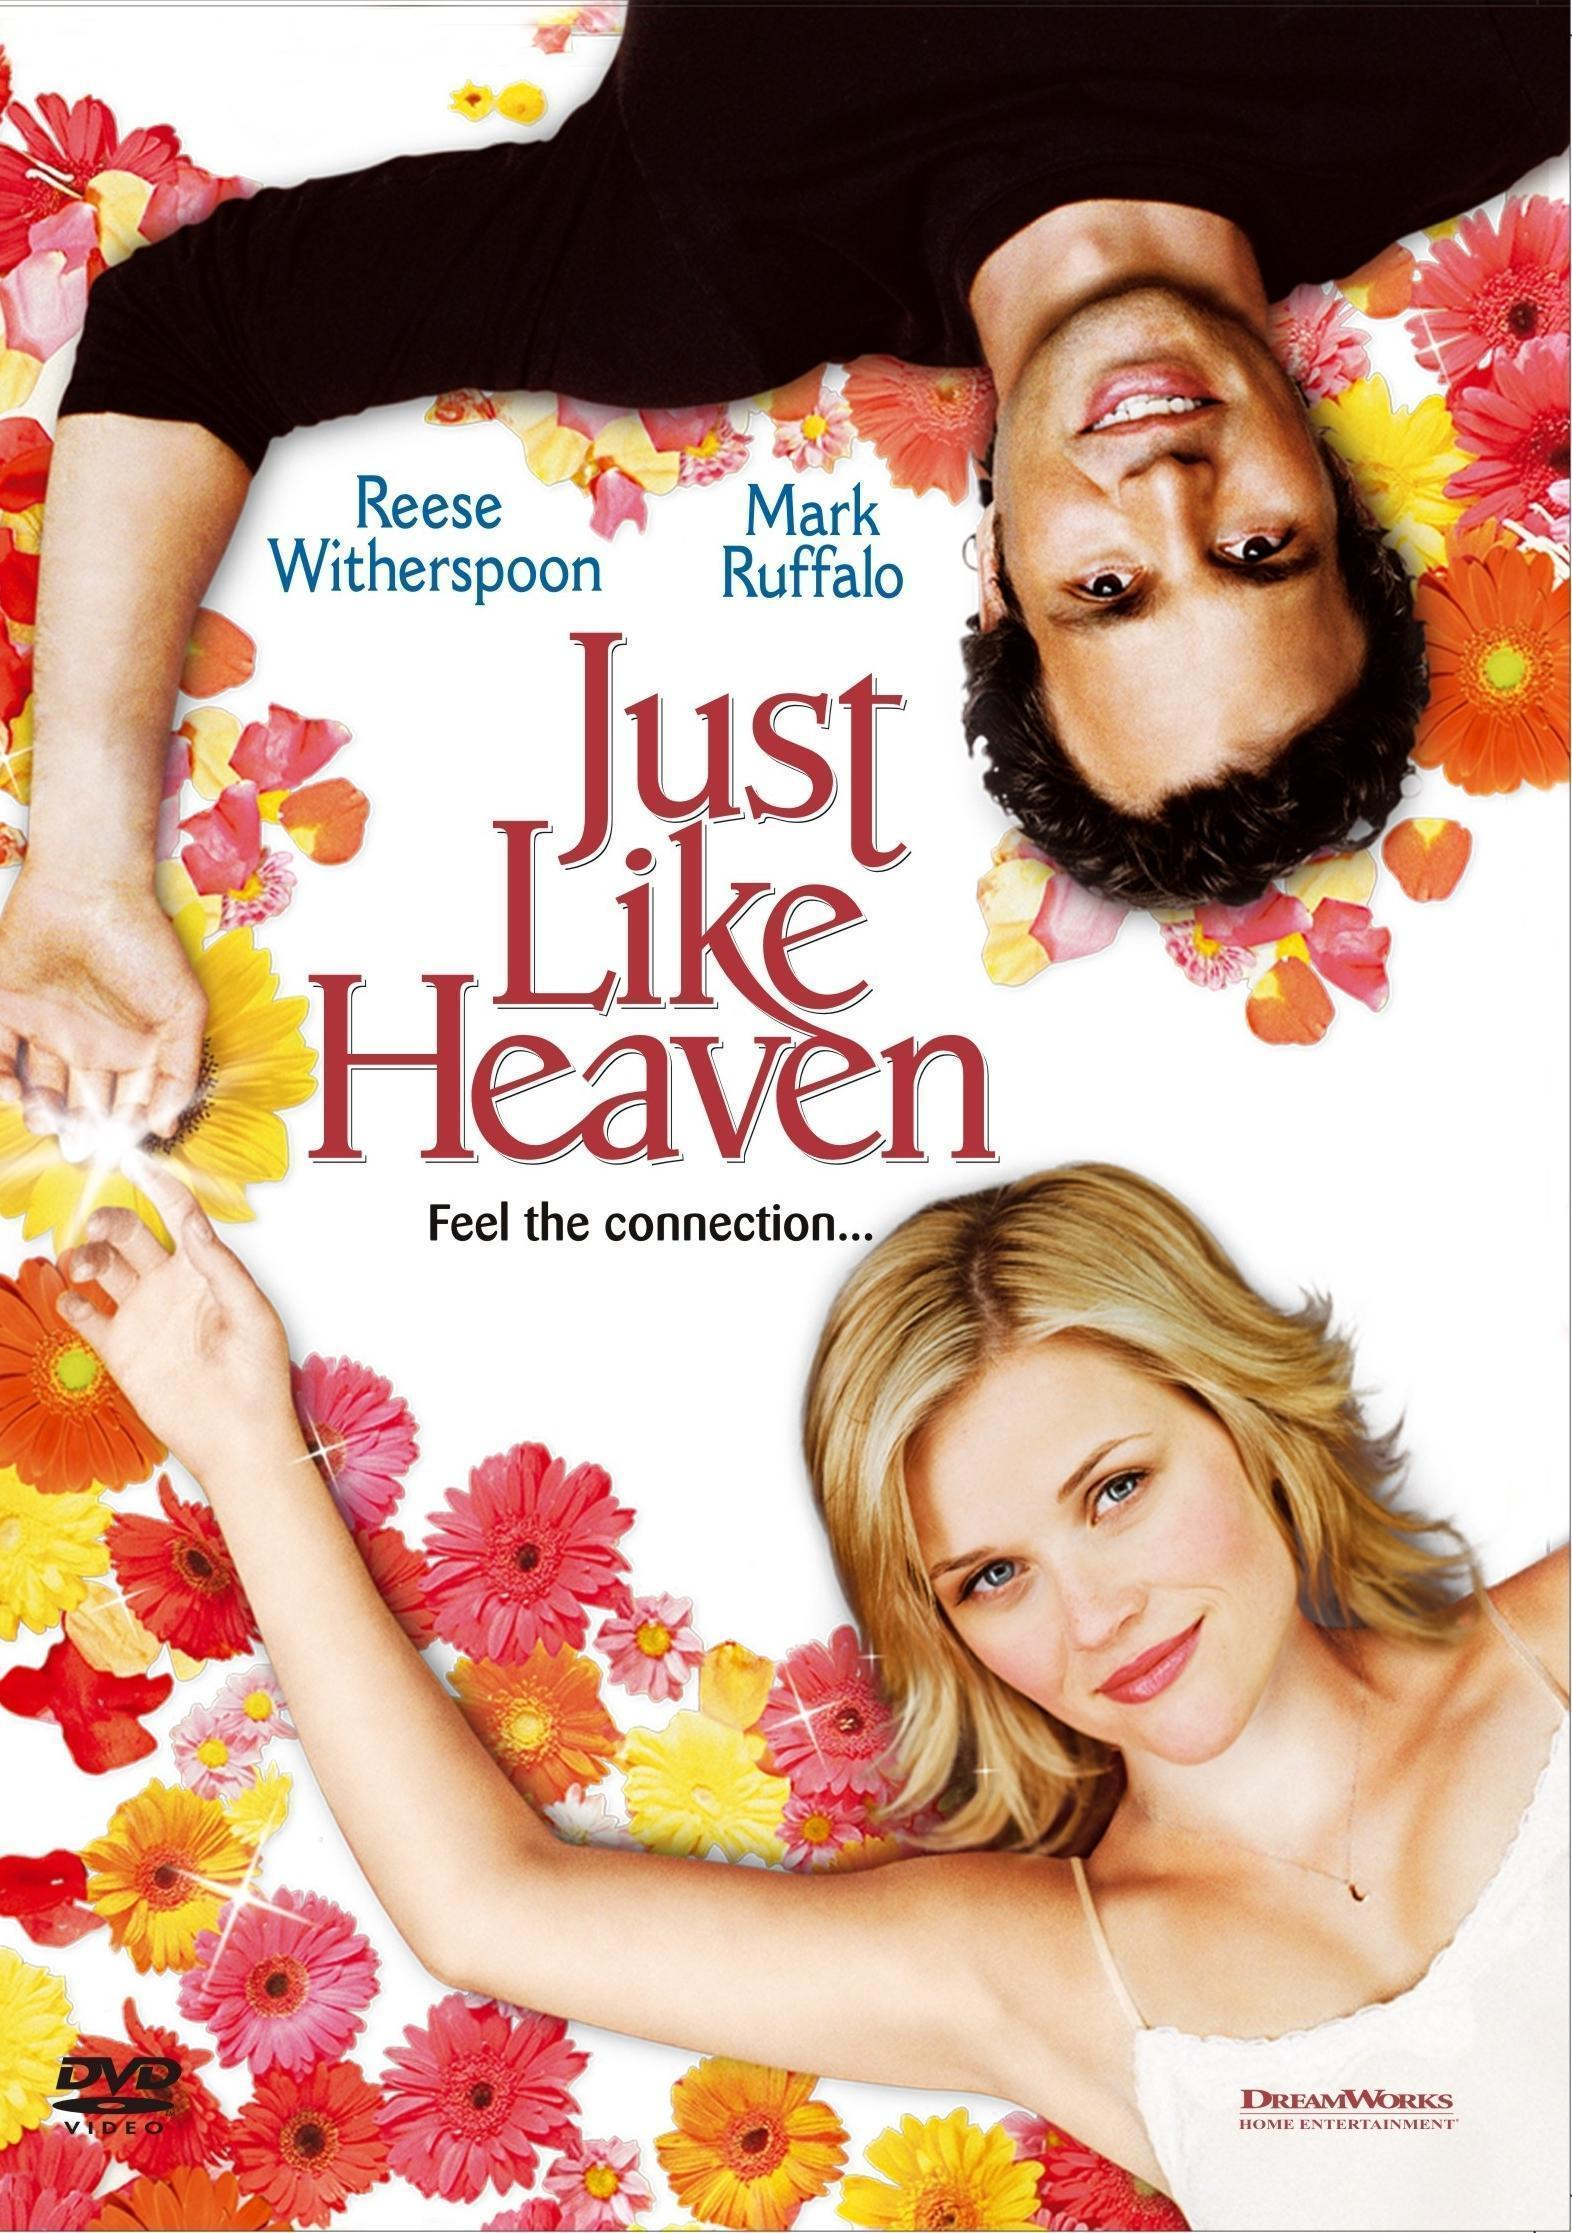 Just Like Heaven DVD inlay1 Nerdipop